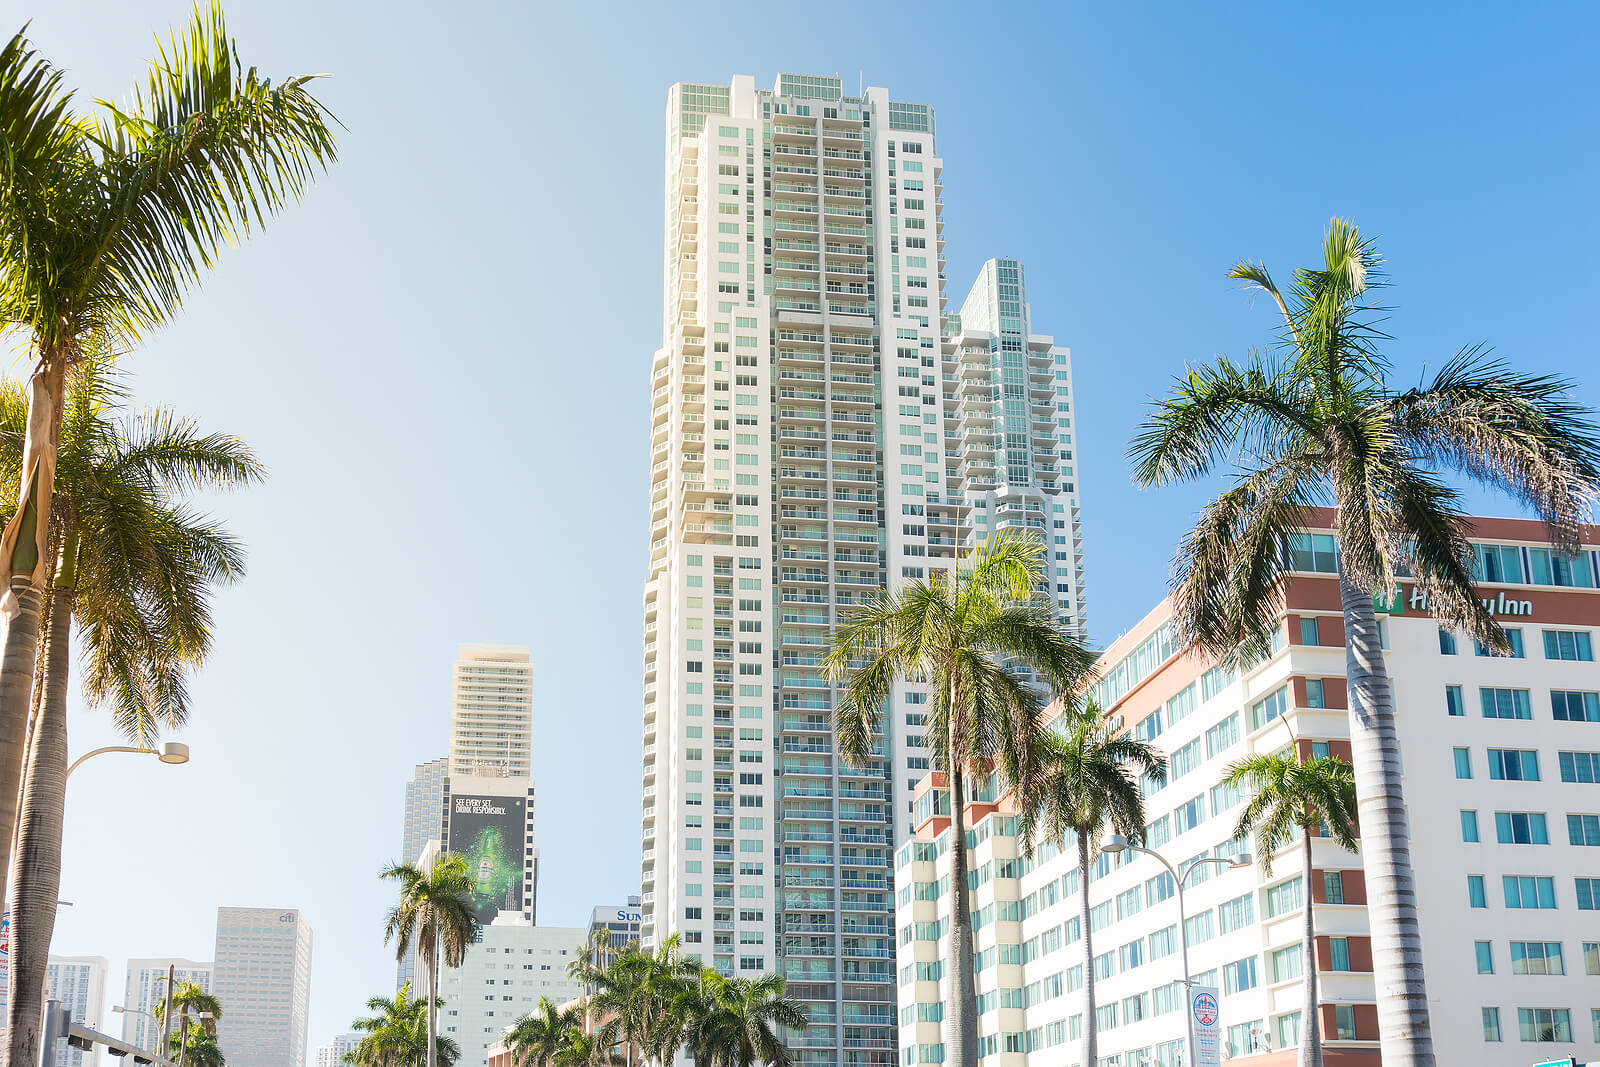 Downtown Miami's Tallest Condo Towers